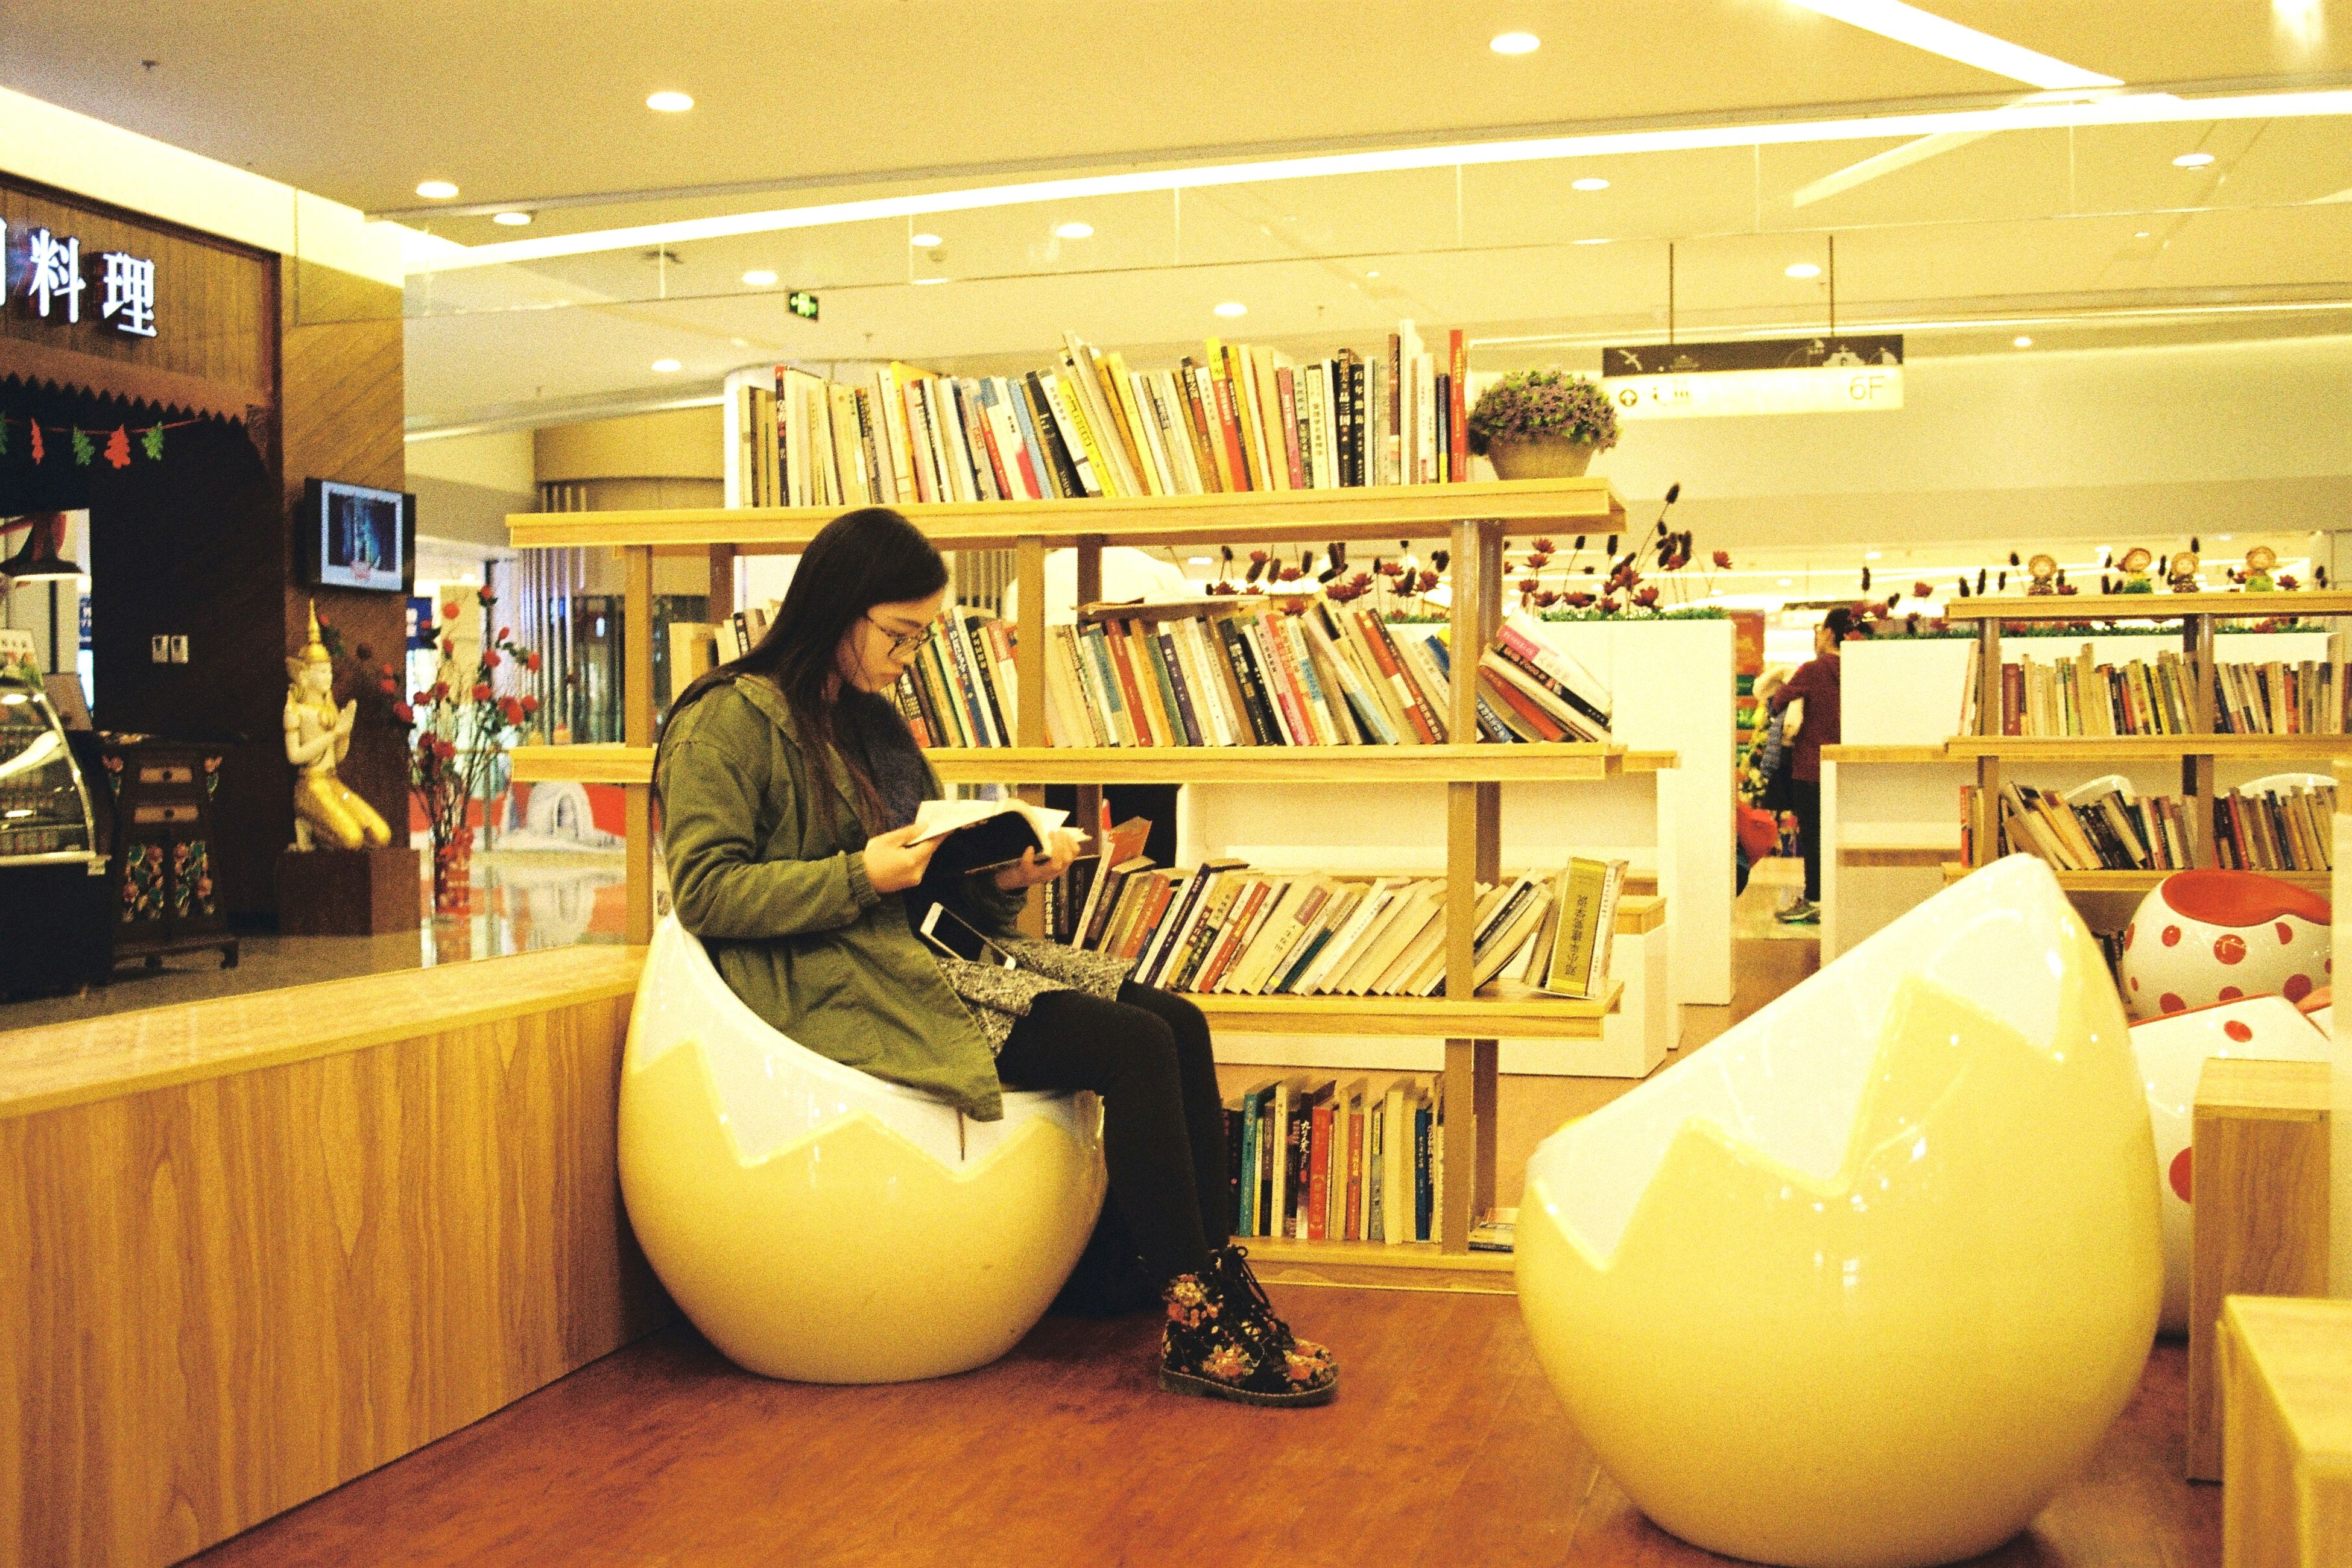 Reading.. People Film People Of EyeEm Film Photography Indoors  Chair Indoors  Young Adult Adult ArtWork Canon 365 Project Of Virgolcj 35mm Film Beauty Canon Ftb Indoors  Reading A Book Reading